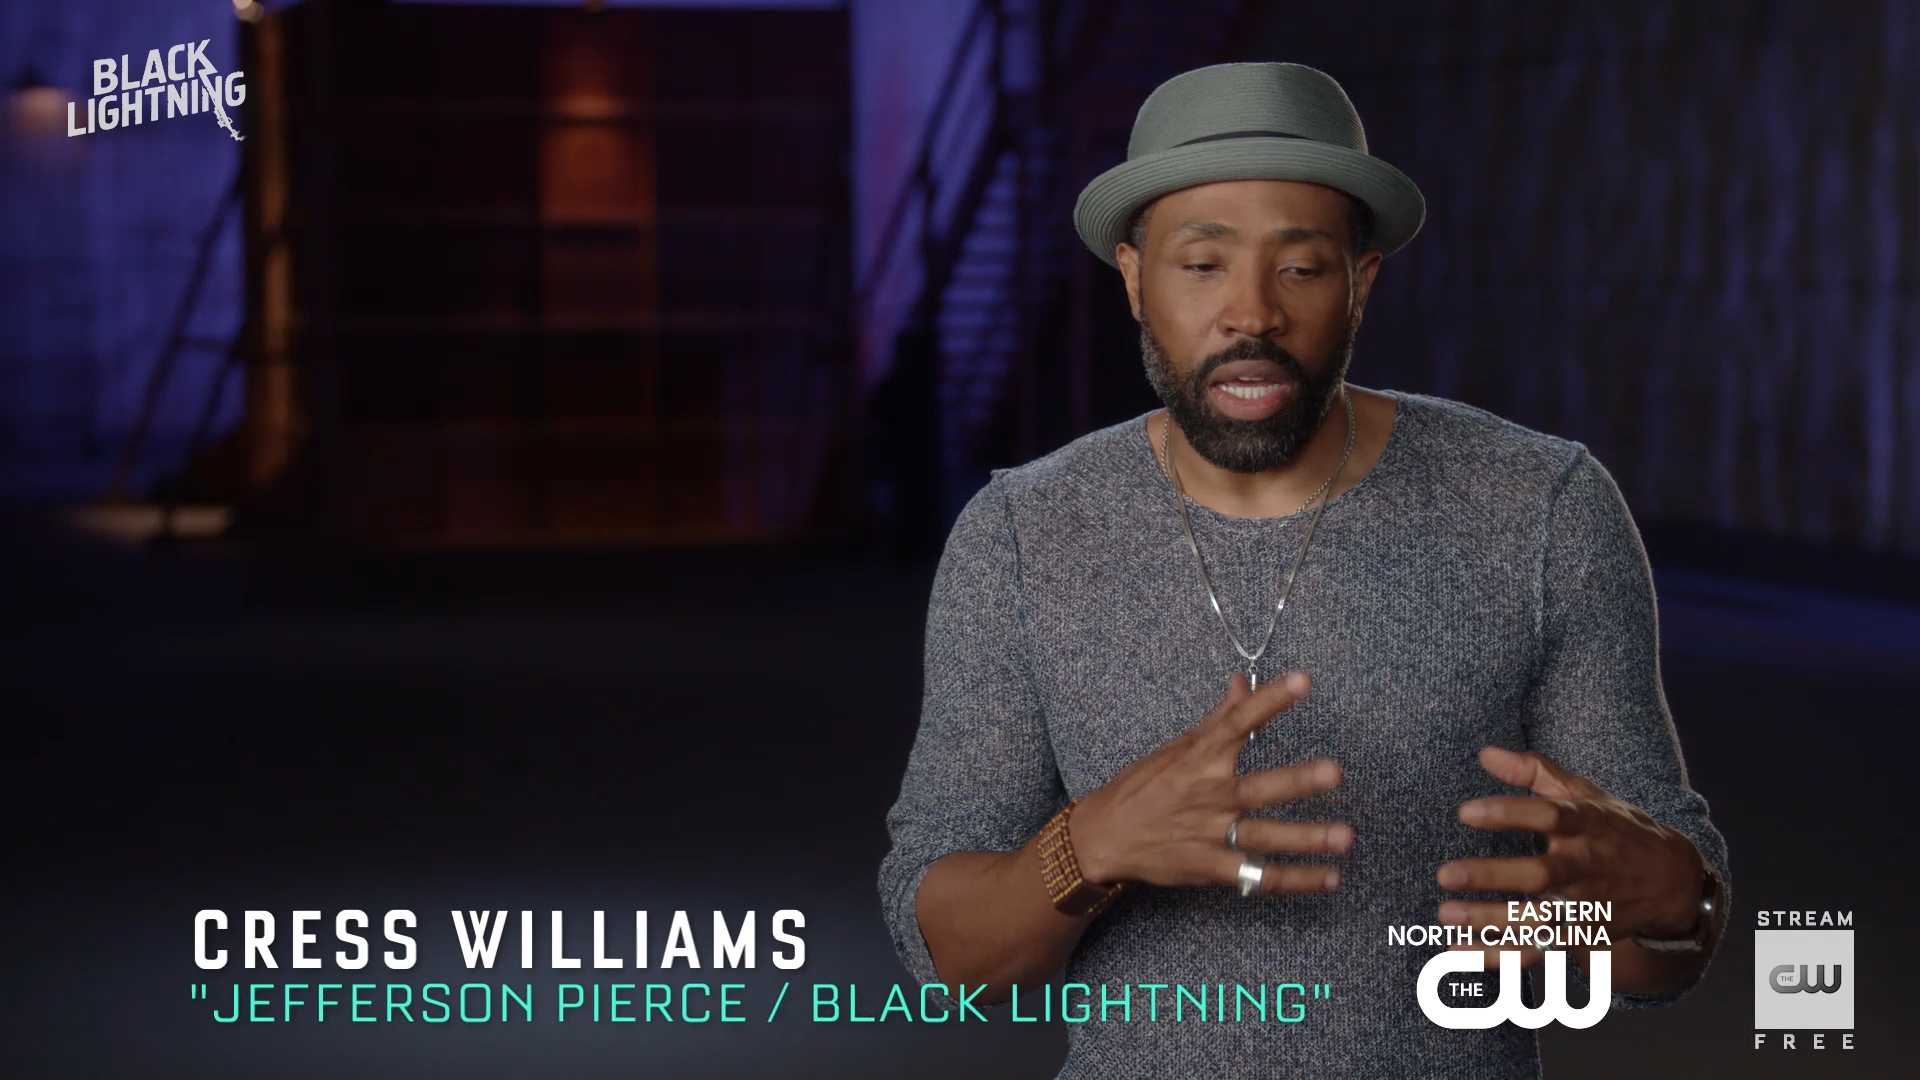 Black Lightning | A Foundation of Family